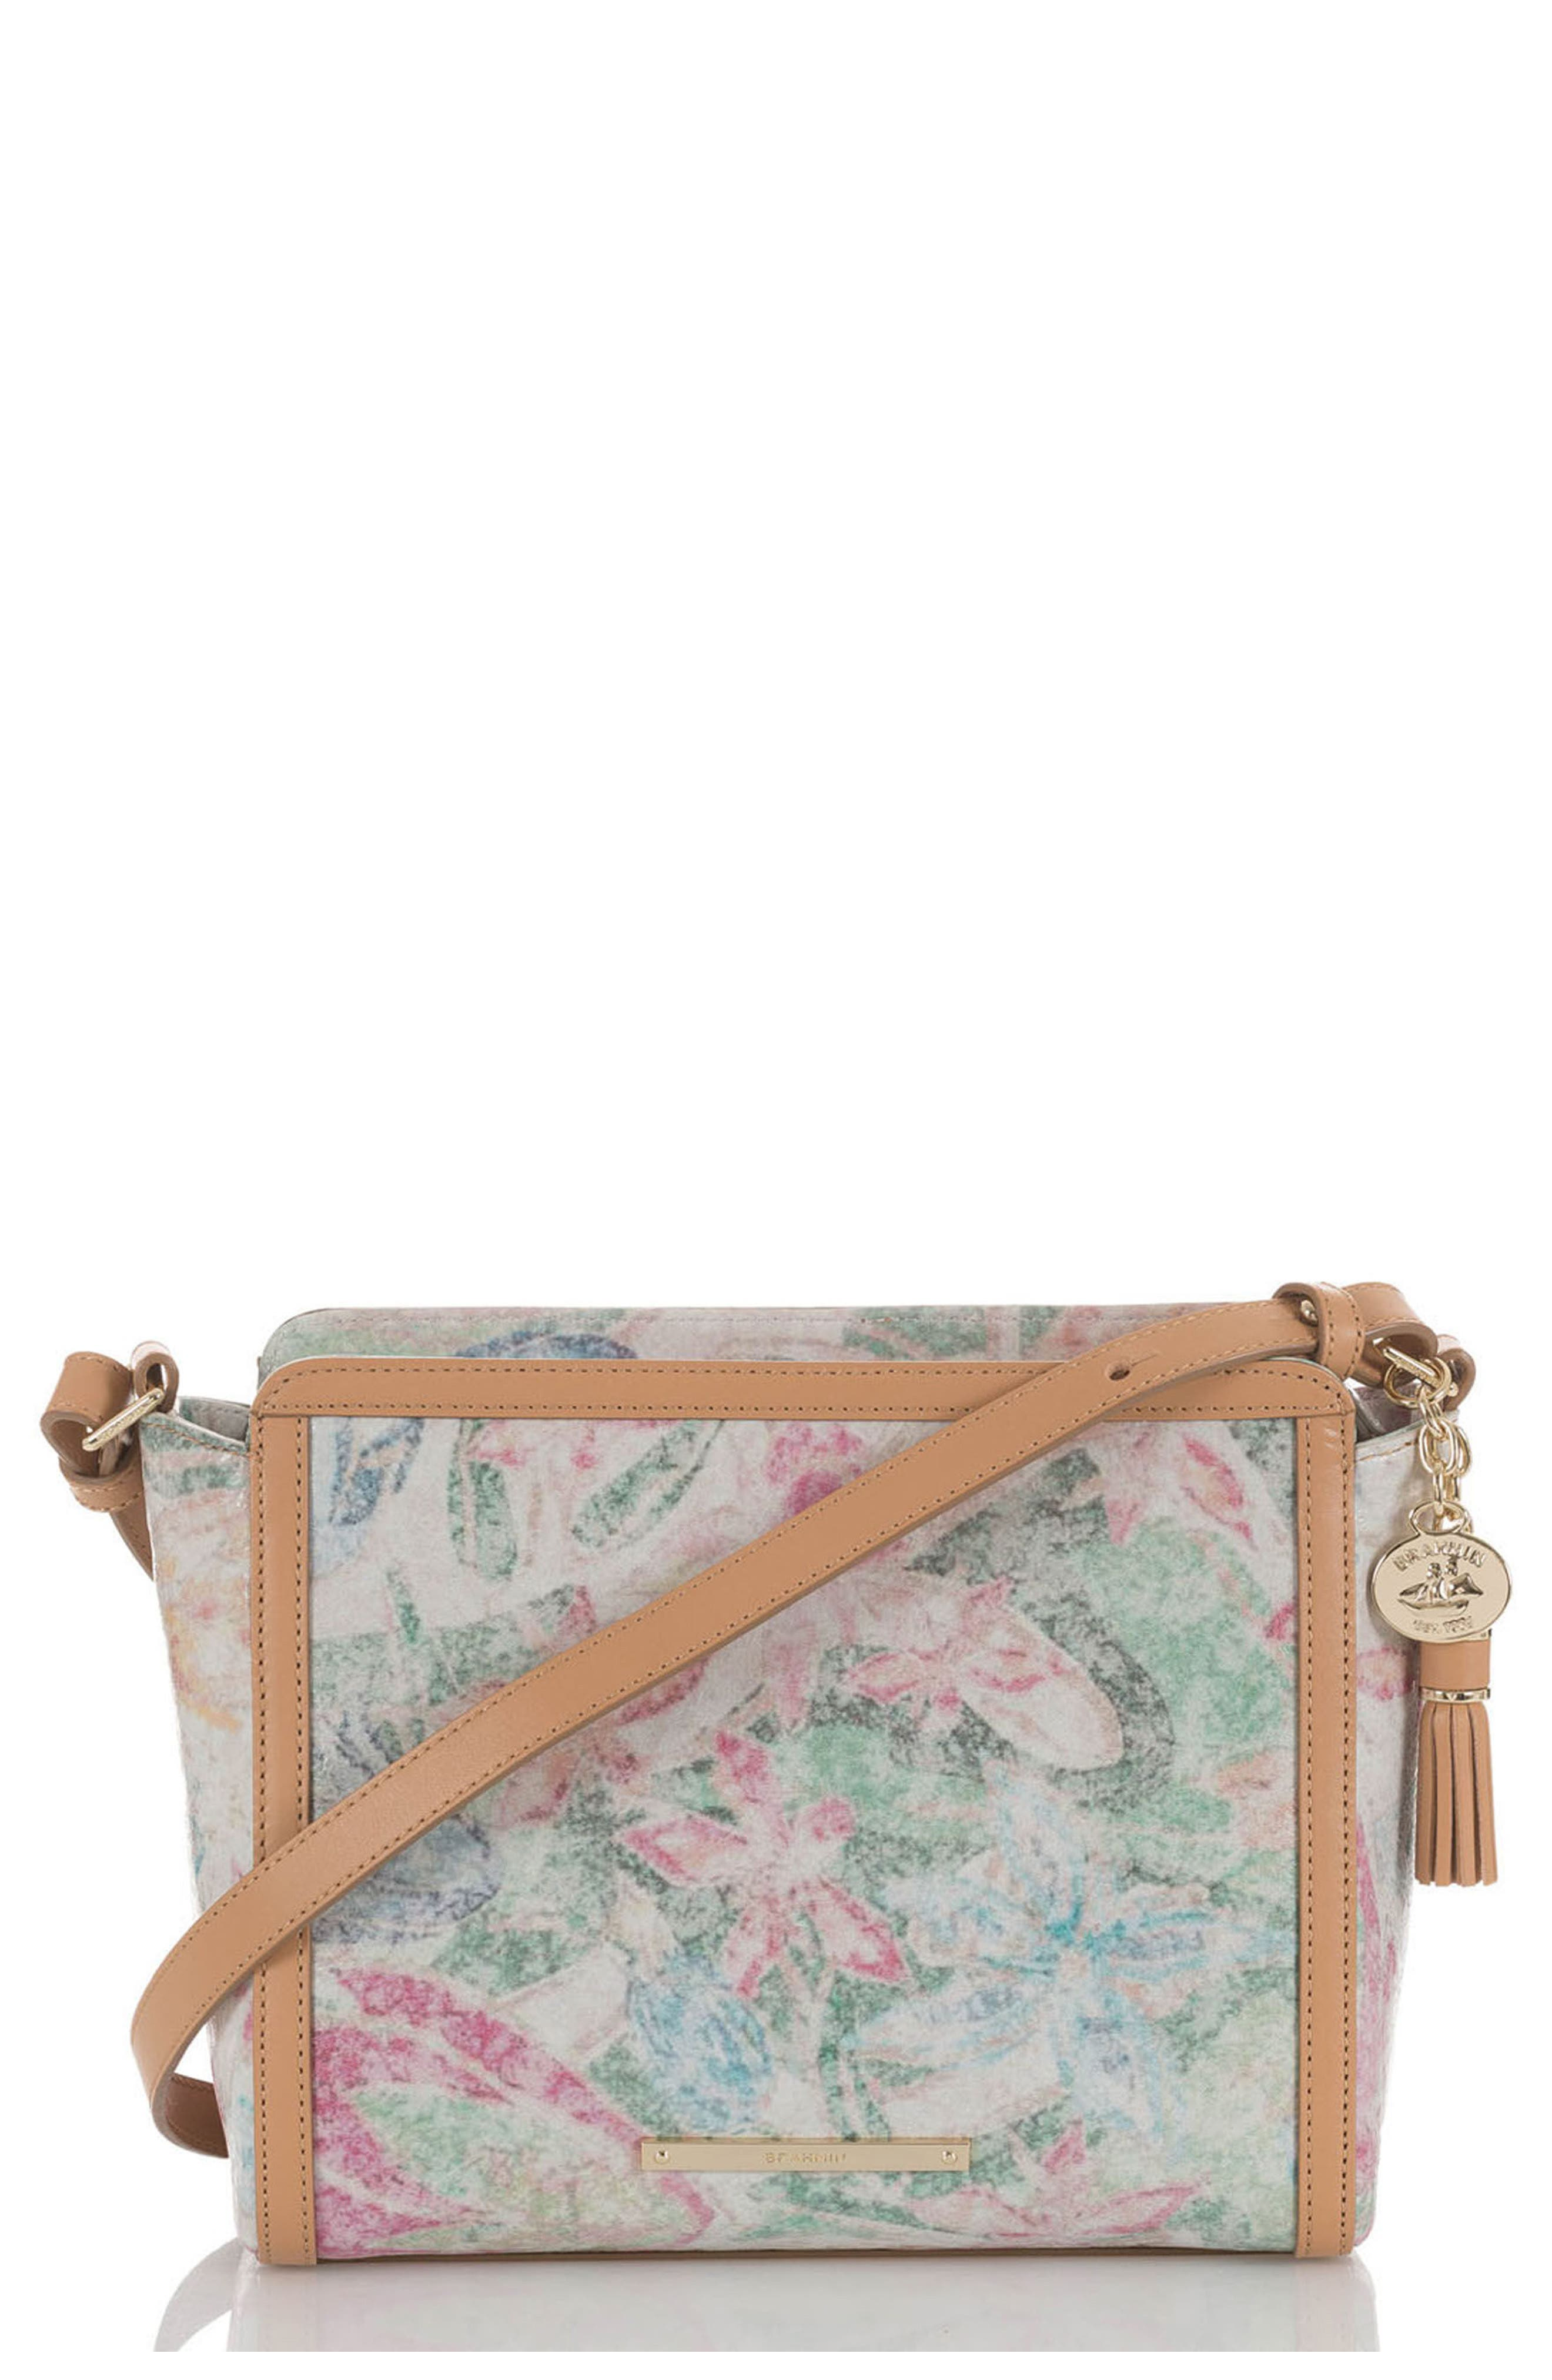 Floral Carrie Leather Crossbody Bag,                             Main thumbnail 1, color,                             Creme